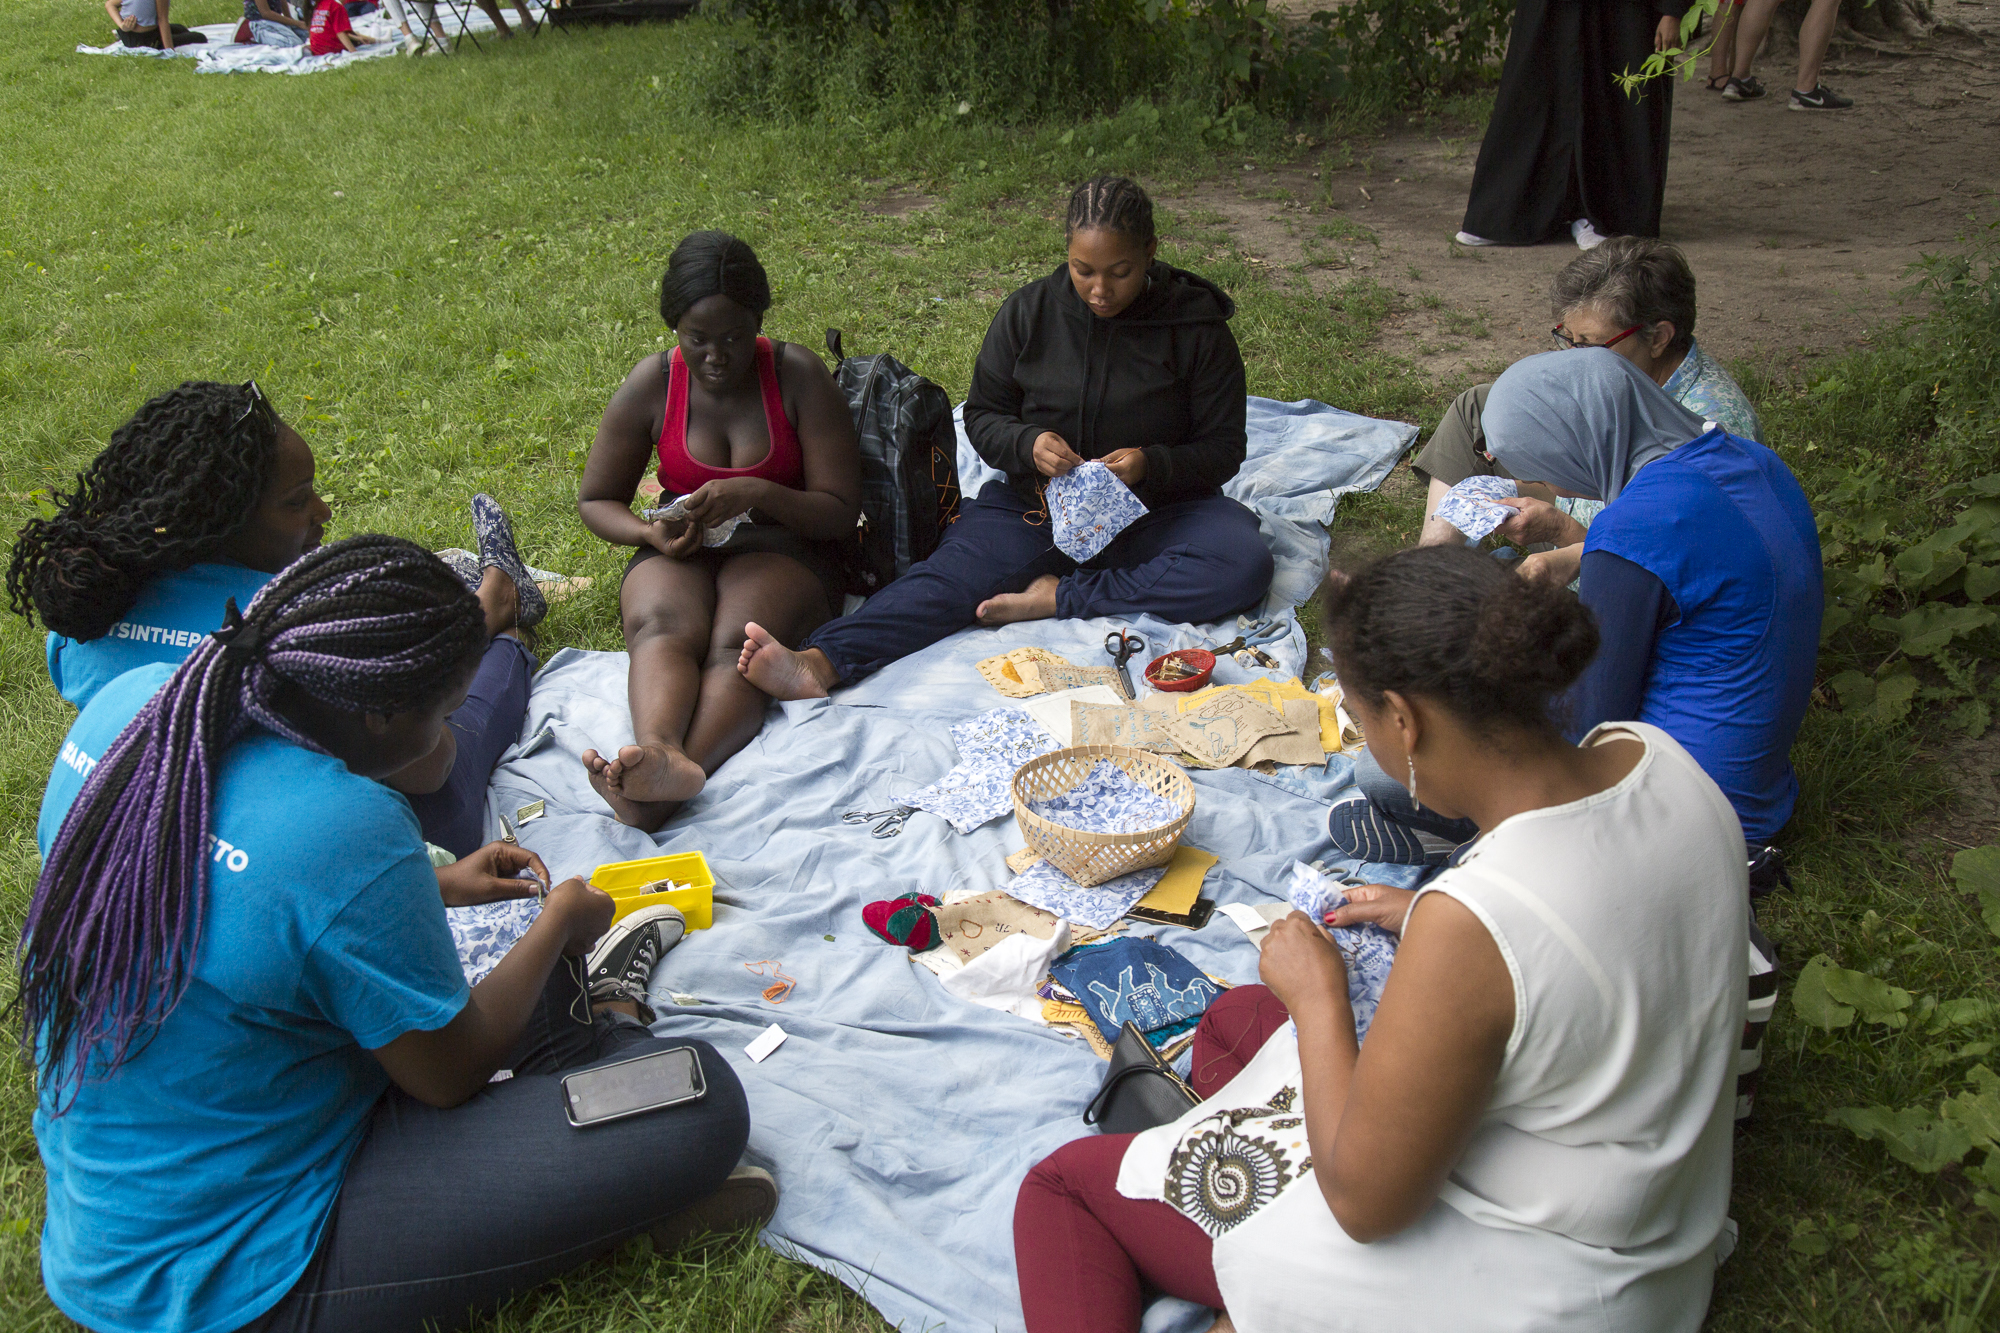 Broadacres Picnic #2 (14 of 35).jpg